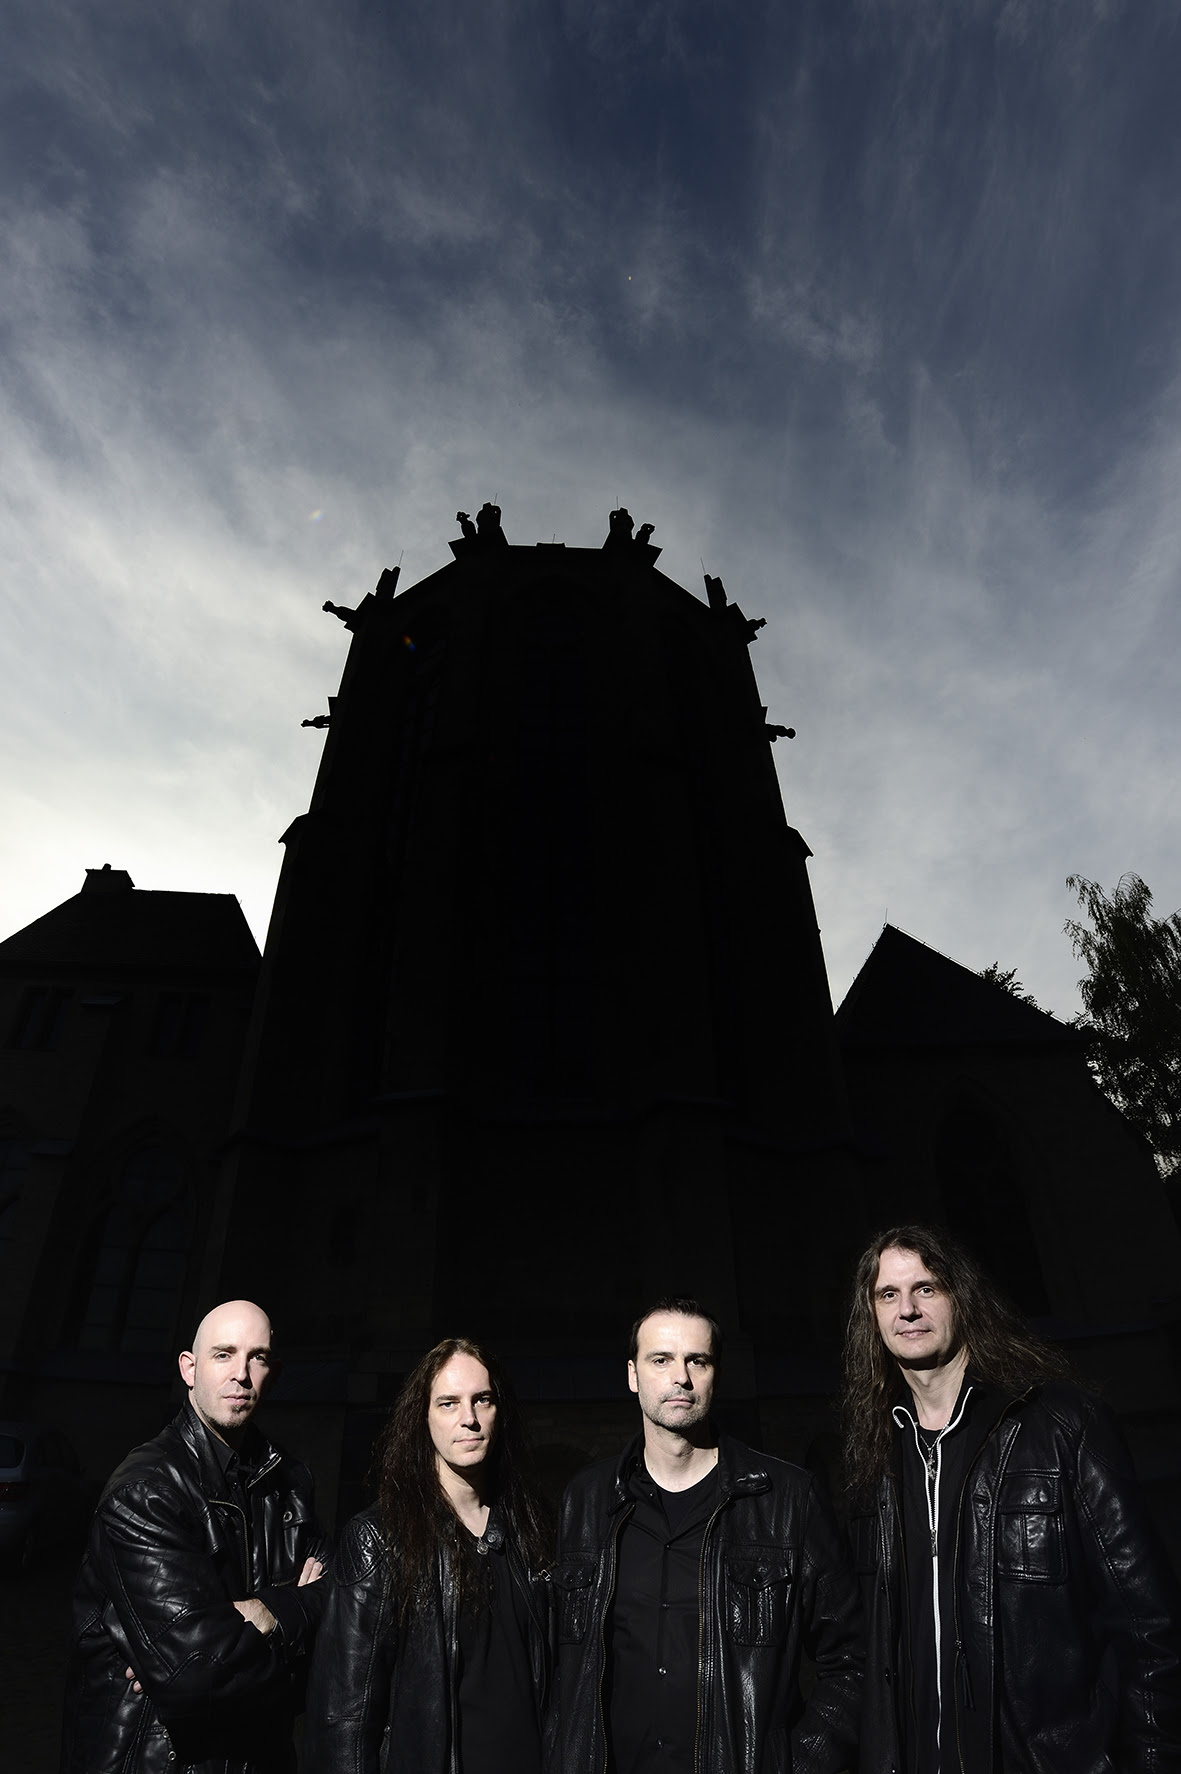 Blind Guardian promoshoot at Abteiberg in Mönchengladbach, Germany on 4th October 2014 Photocredit: Hans-Martin Issler